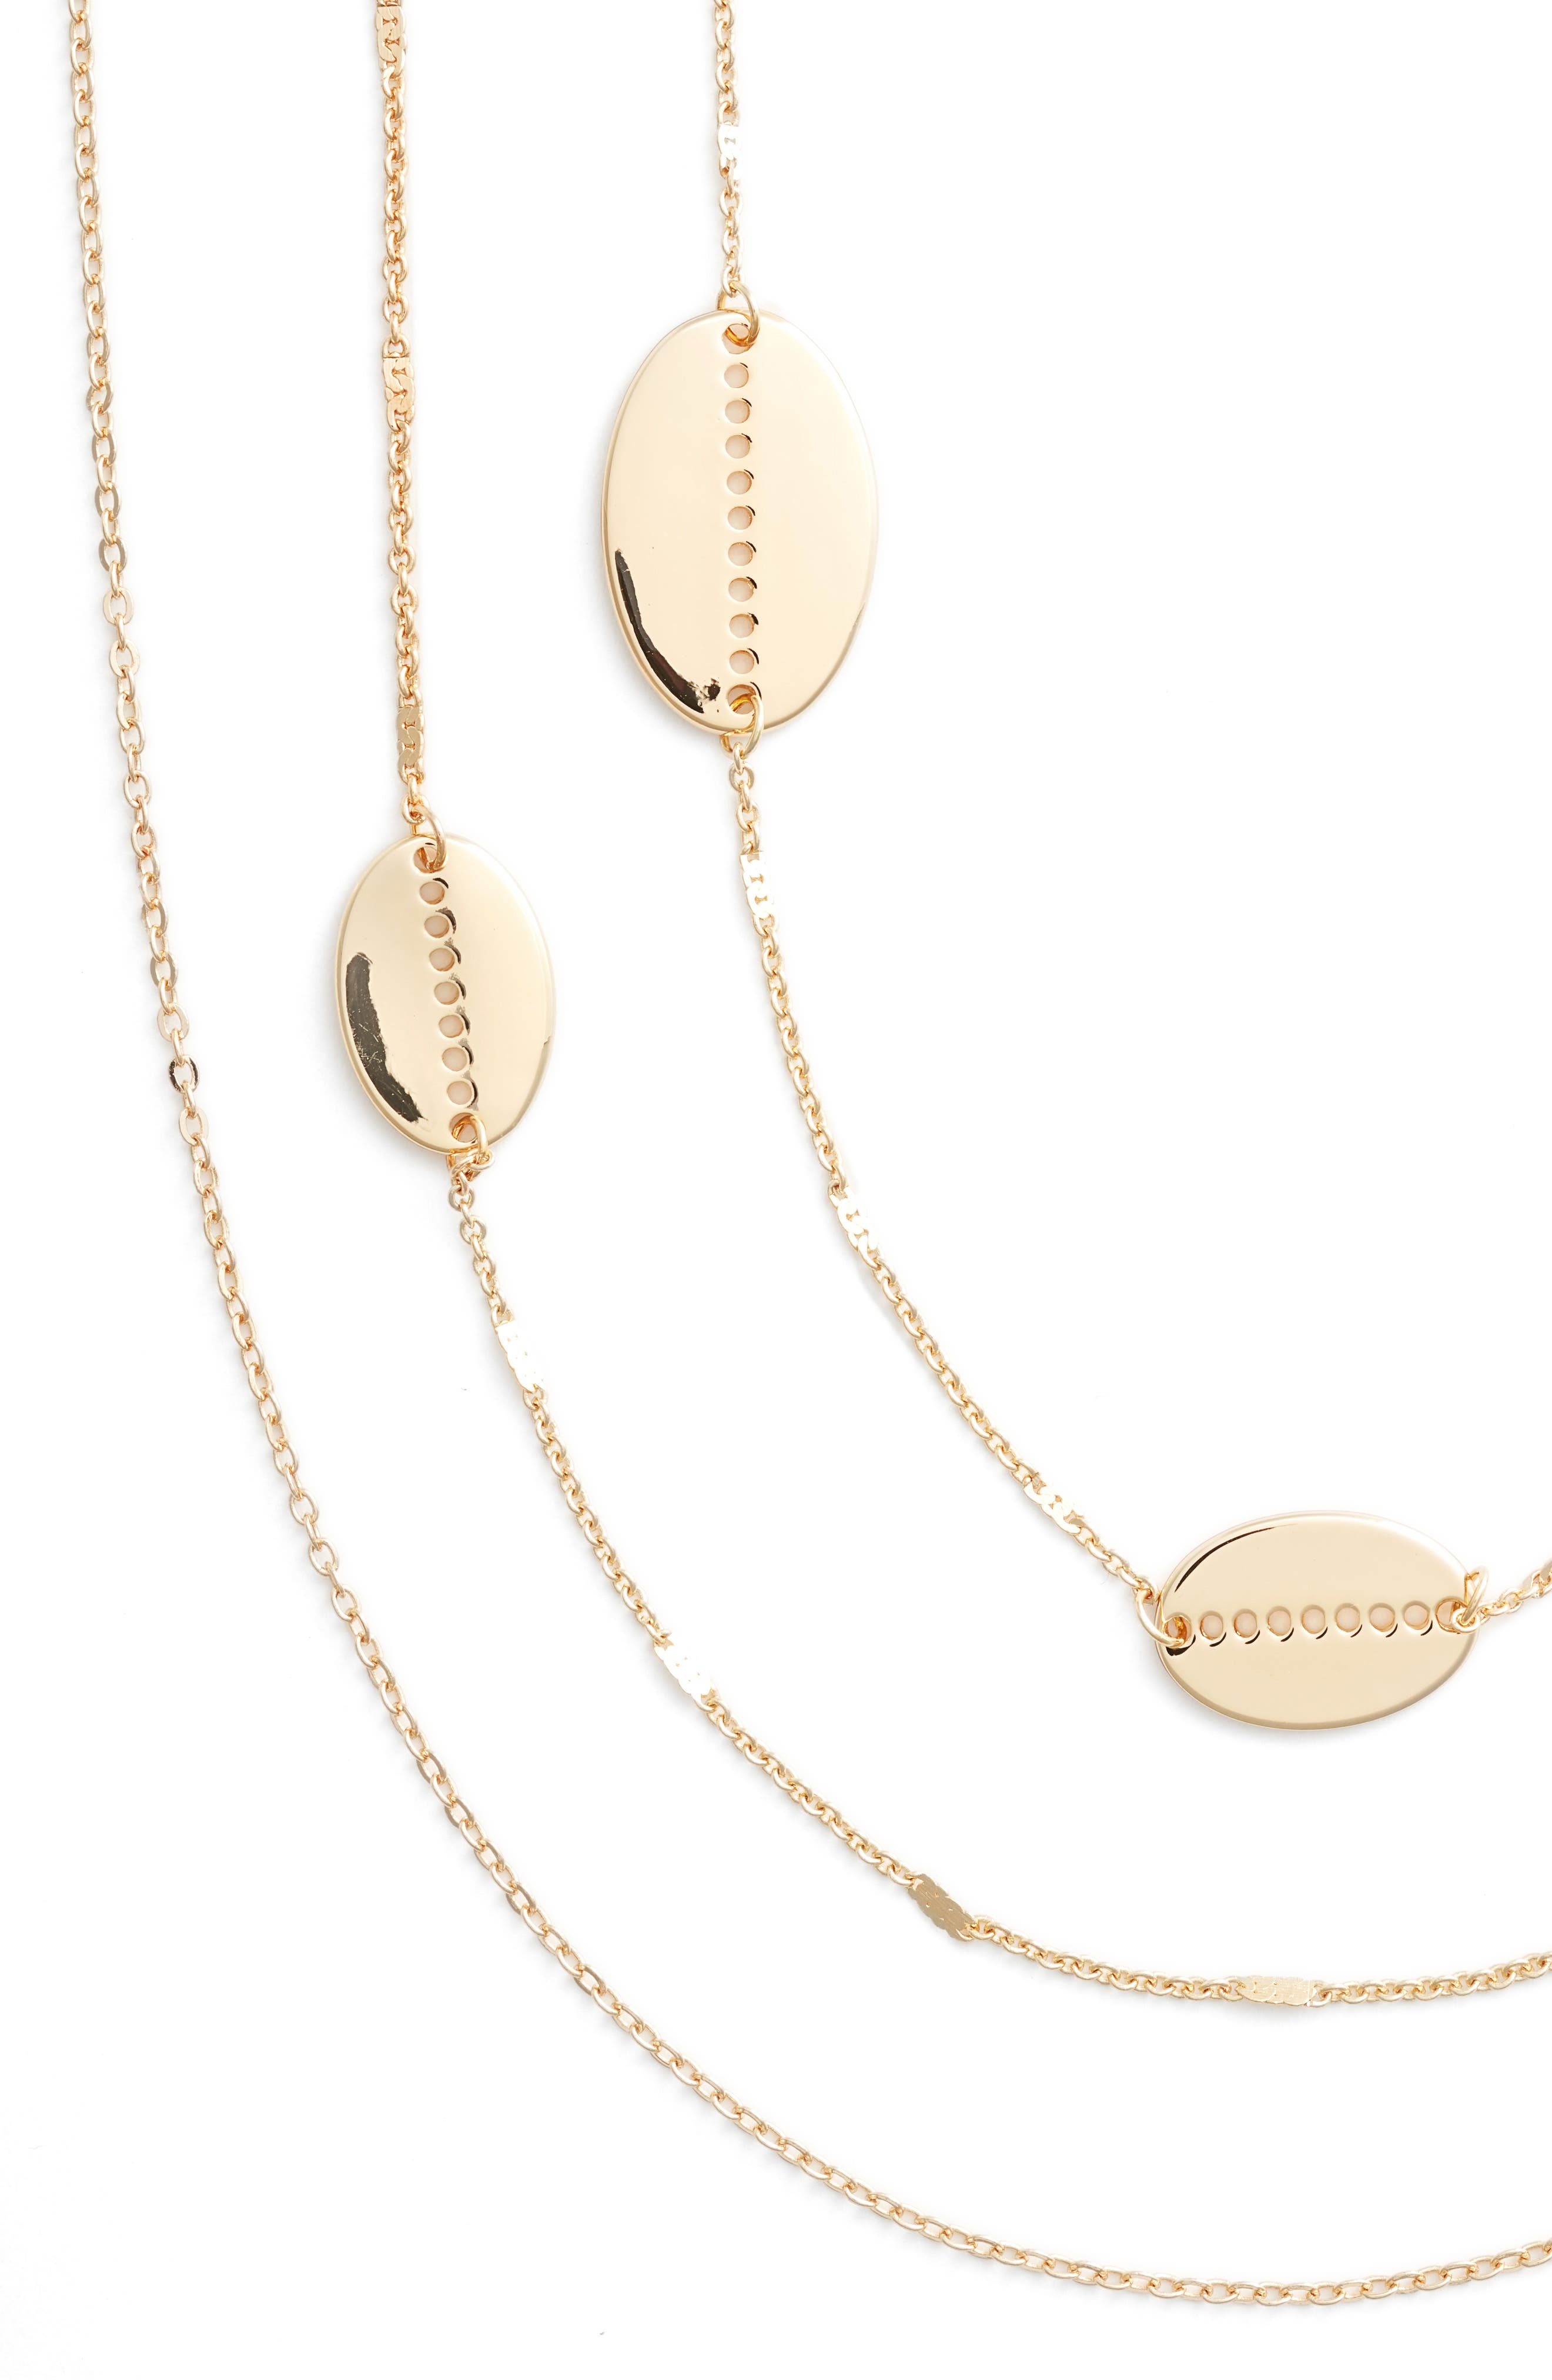 Cutout Oval Station Multistrand Necklace,                             Alternate thumbnail 2, color,                             Gold